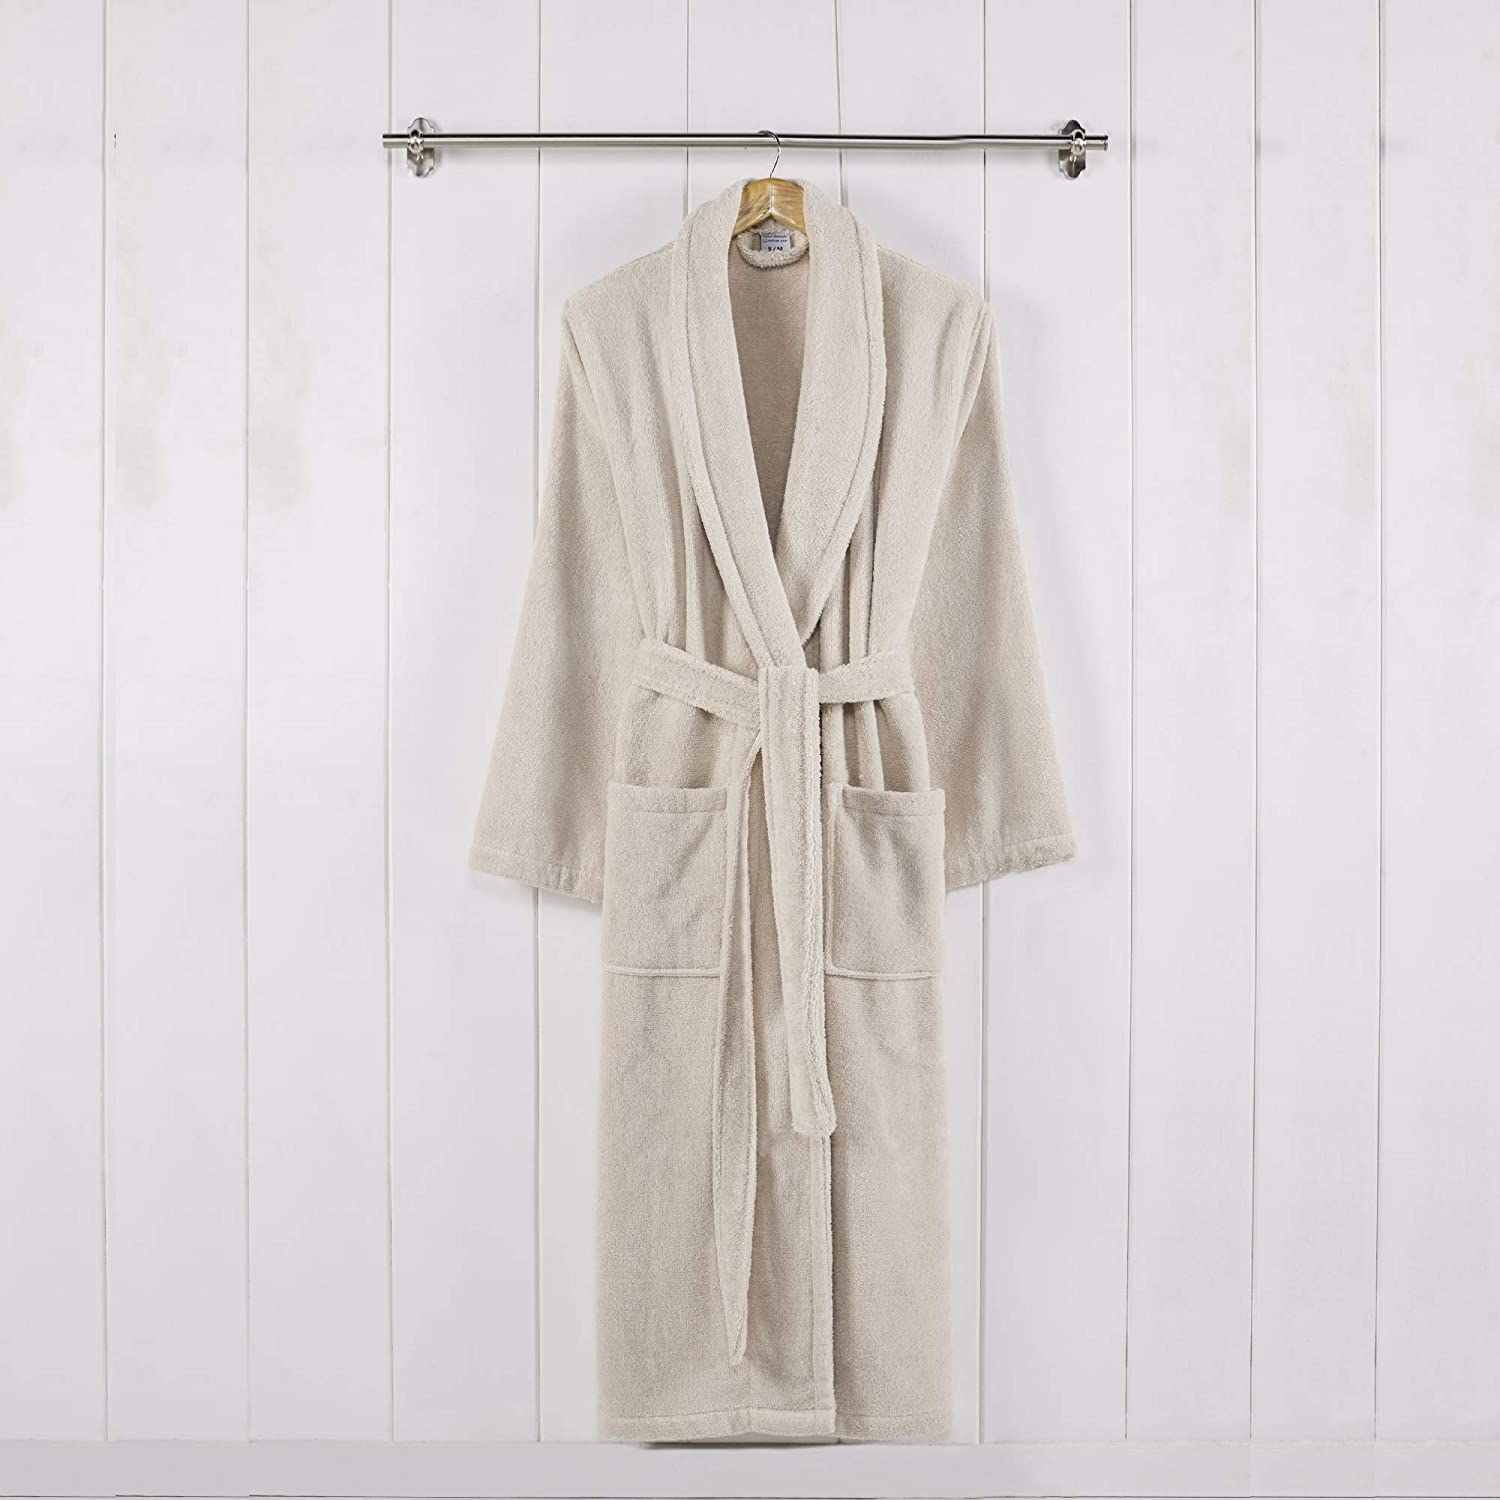 Amrapur Overseas 100-Percent USA Sale Cotton Bathrobe Sh with Classic We OFFer at cheap prices